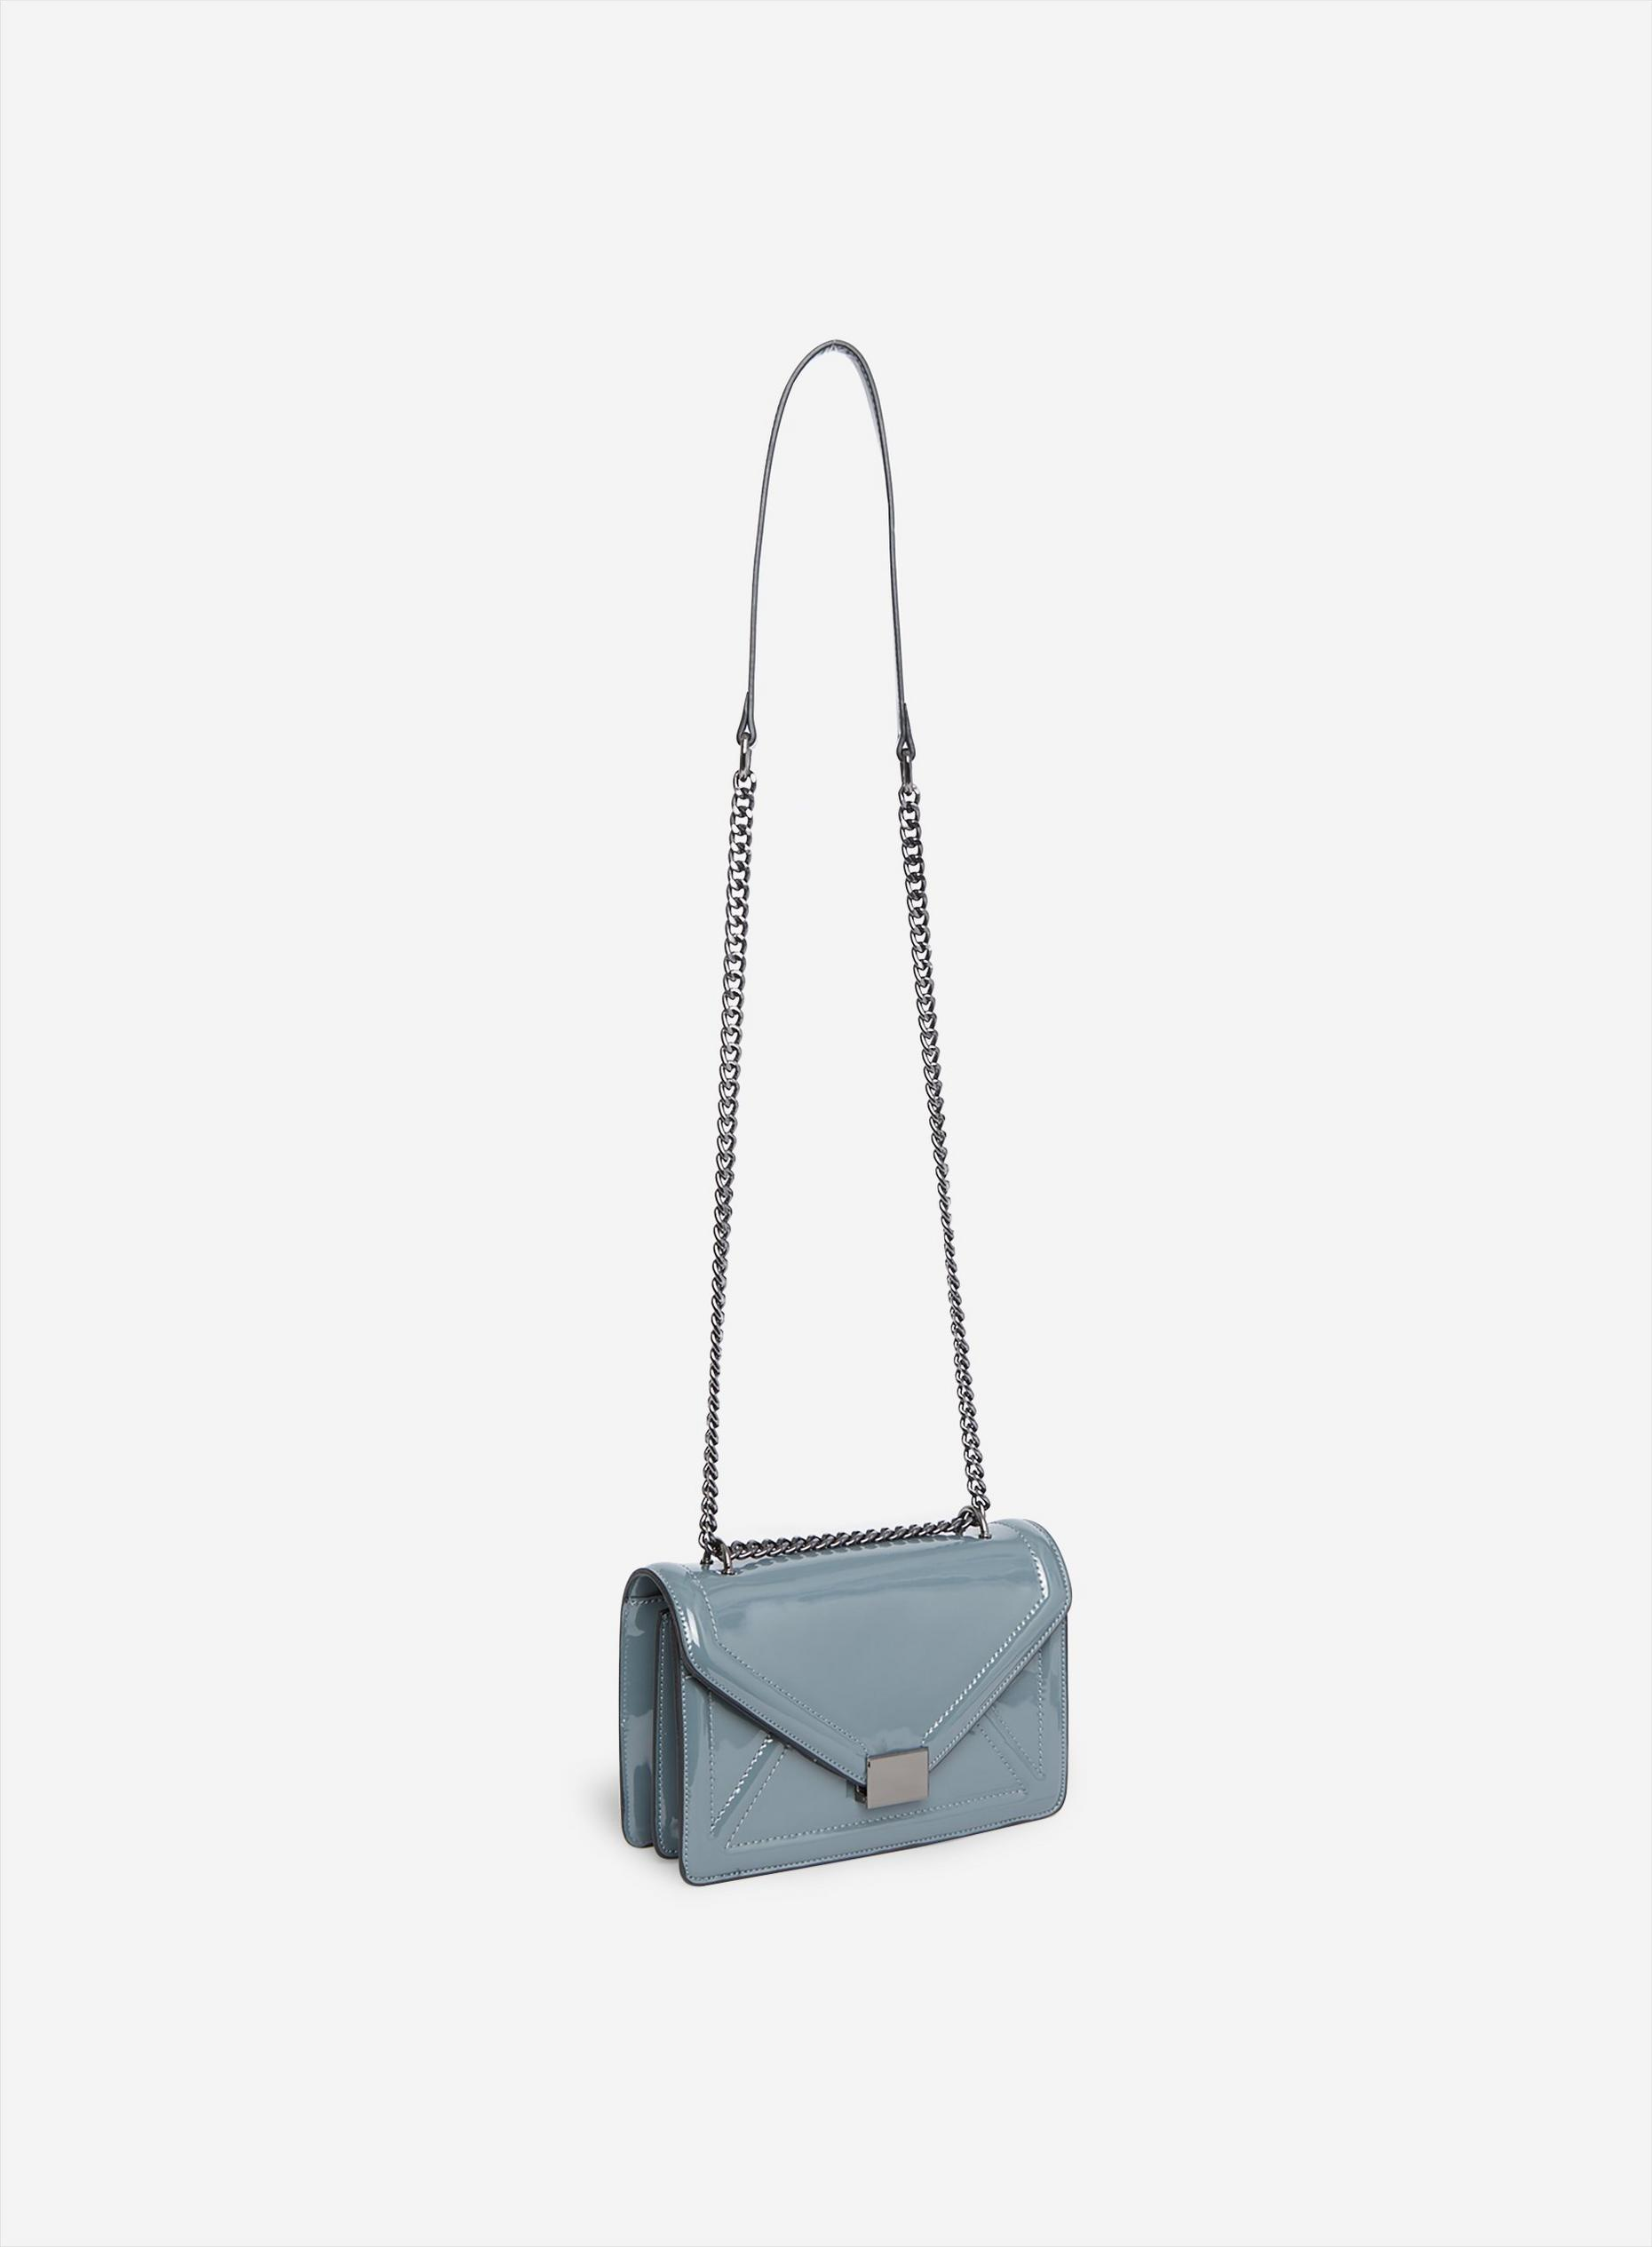 Teal Blue Envelope Boxy Cross Body Bag